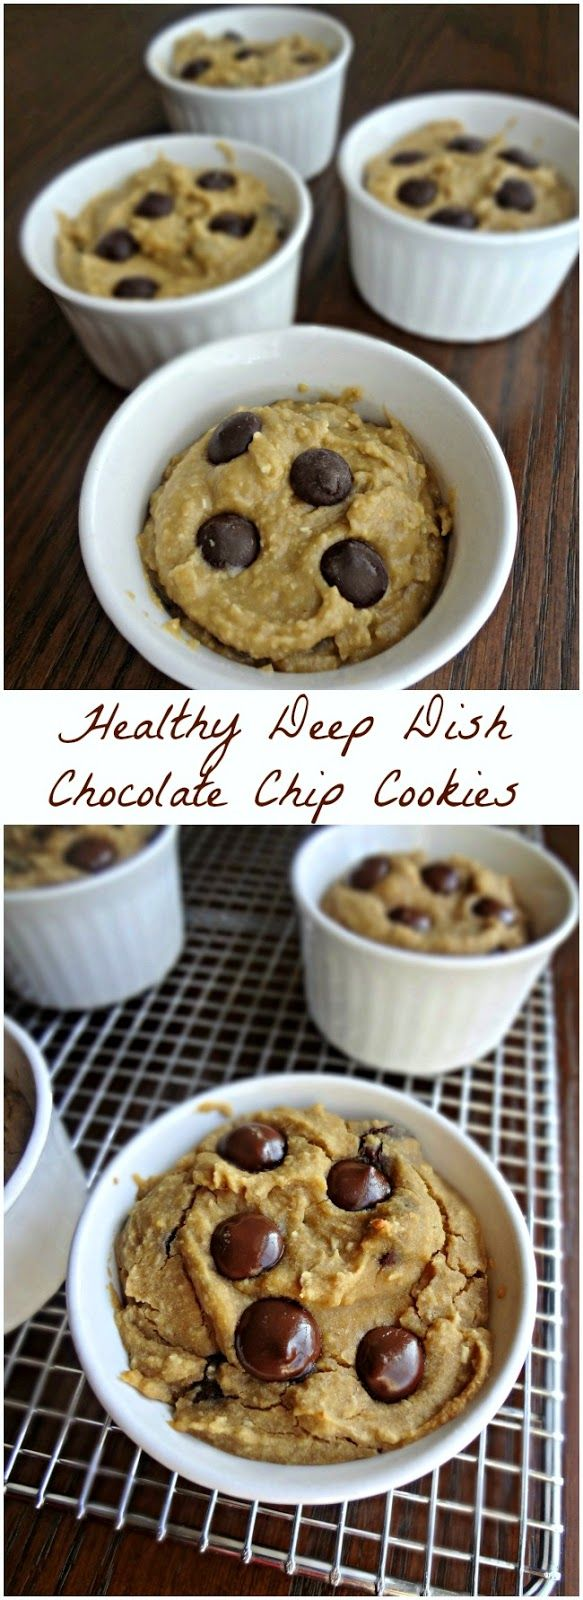 The Cooking Actress: Healthy Deep Dish Chocolate Chip Cookies {Gluten-free, Vegan, Low fat, Dairy free} Bake up this recipe for delicious, gooey, cookies--you'll never guess the secret ingredient!